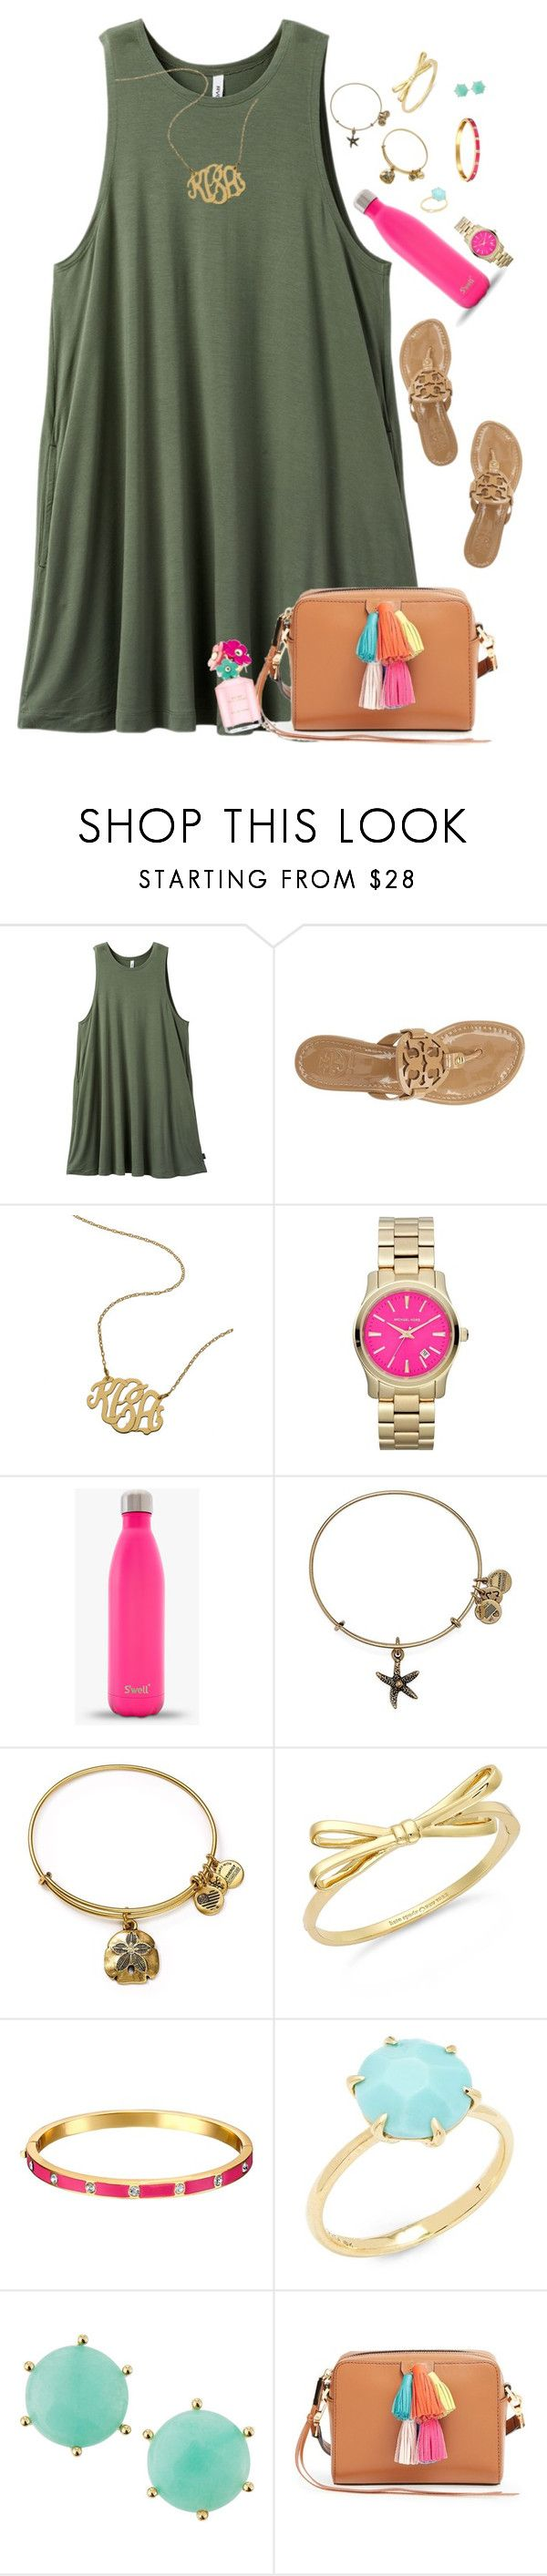 """My birthday dinner outfit in the items! I'll be posting better pics soon! "" by moseleym ❤ liked on Polyvore featuring RVCA, Tory Burch, Michael Kors, Alex and Ani, Kate Spade, Ippolita, Panacea, Rebecca Minkoff and Marc Jacobs"